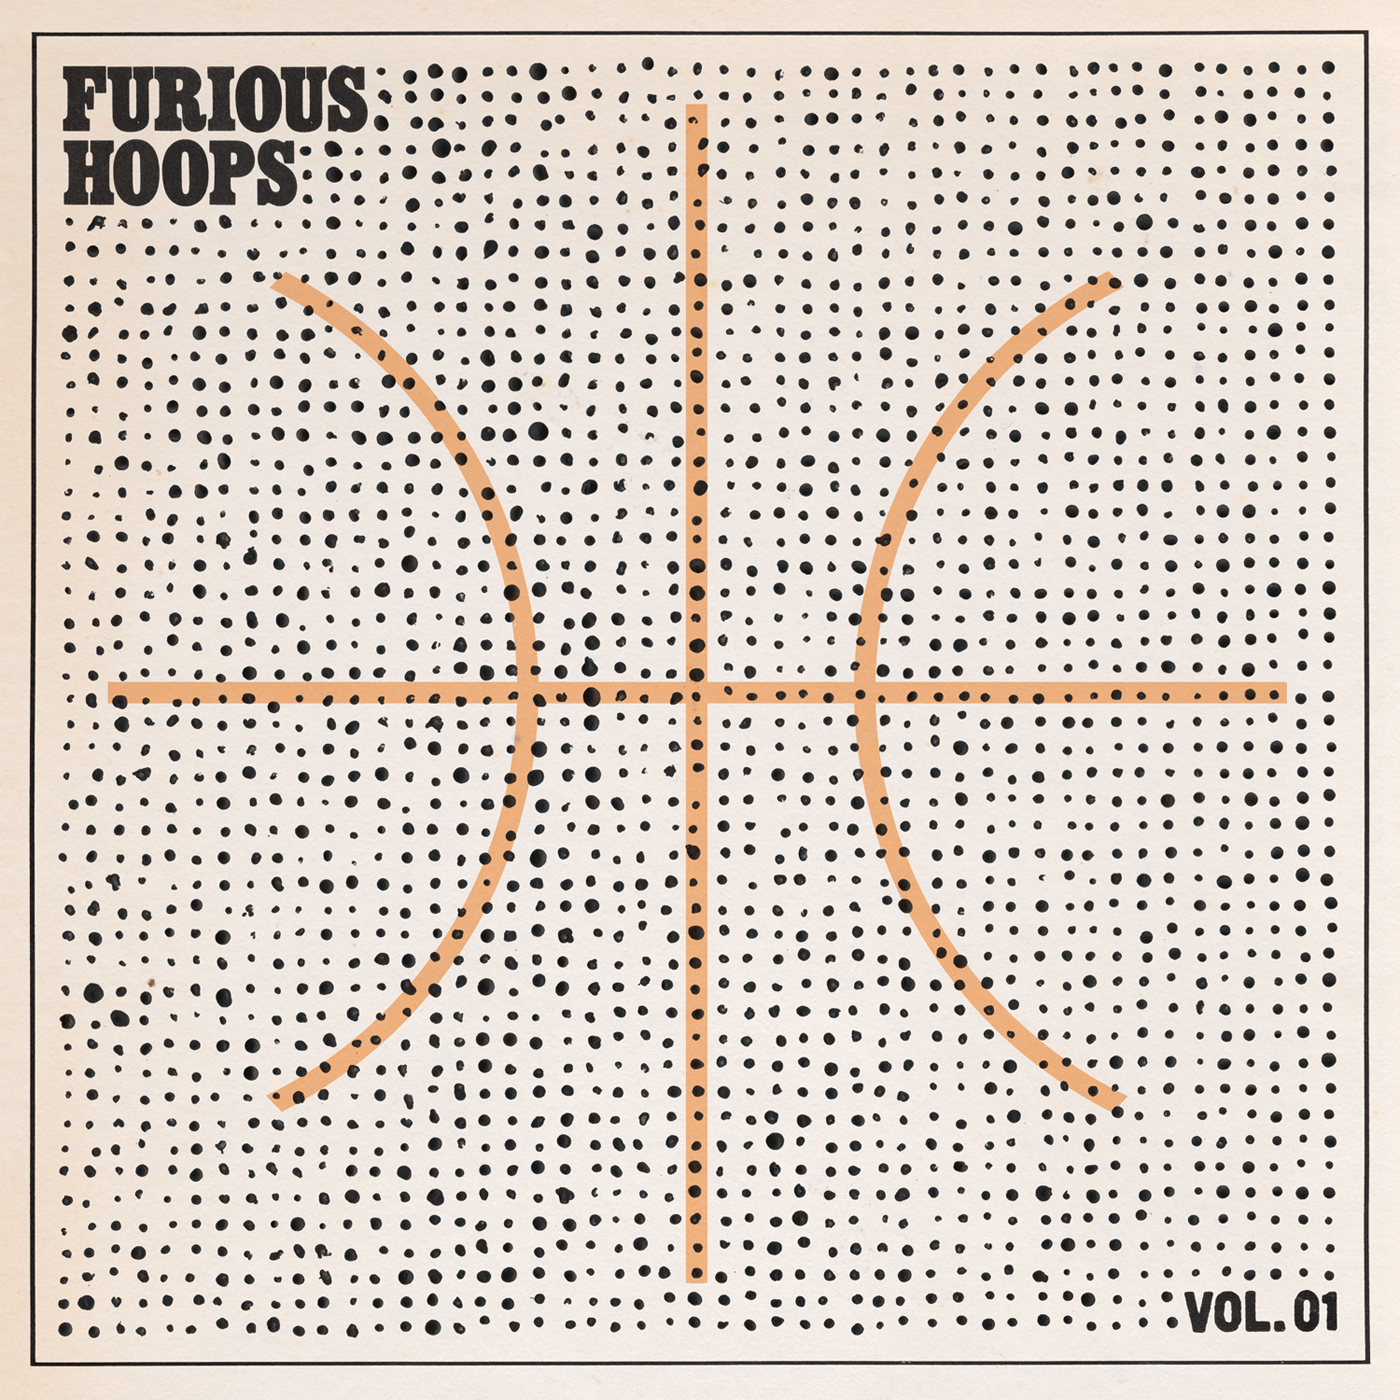 Furious hoops vol 1. (compilation)